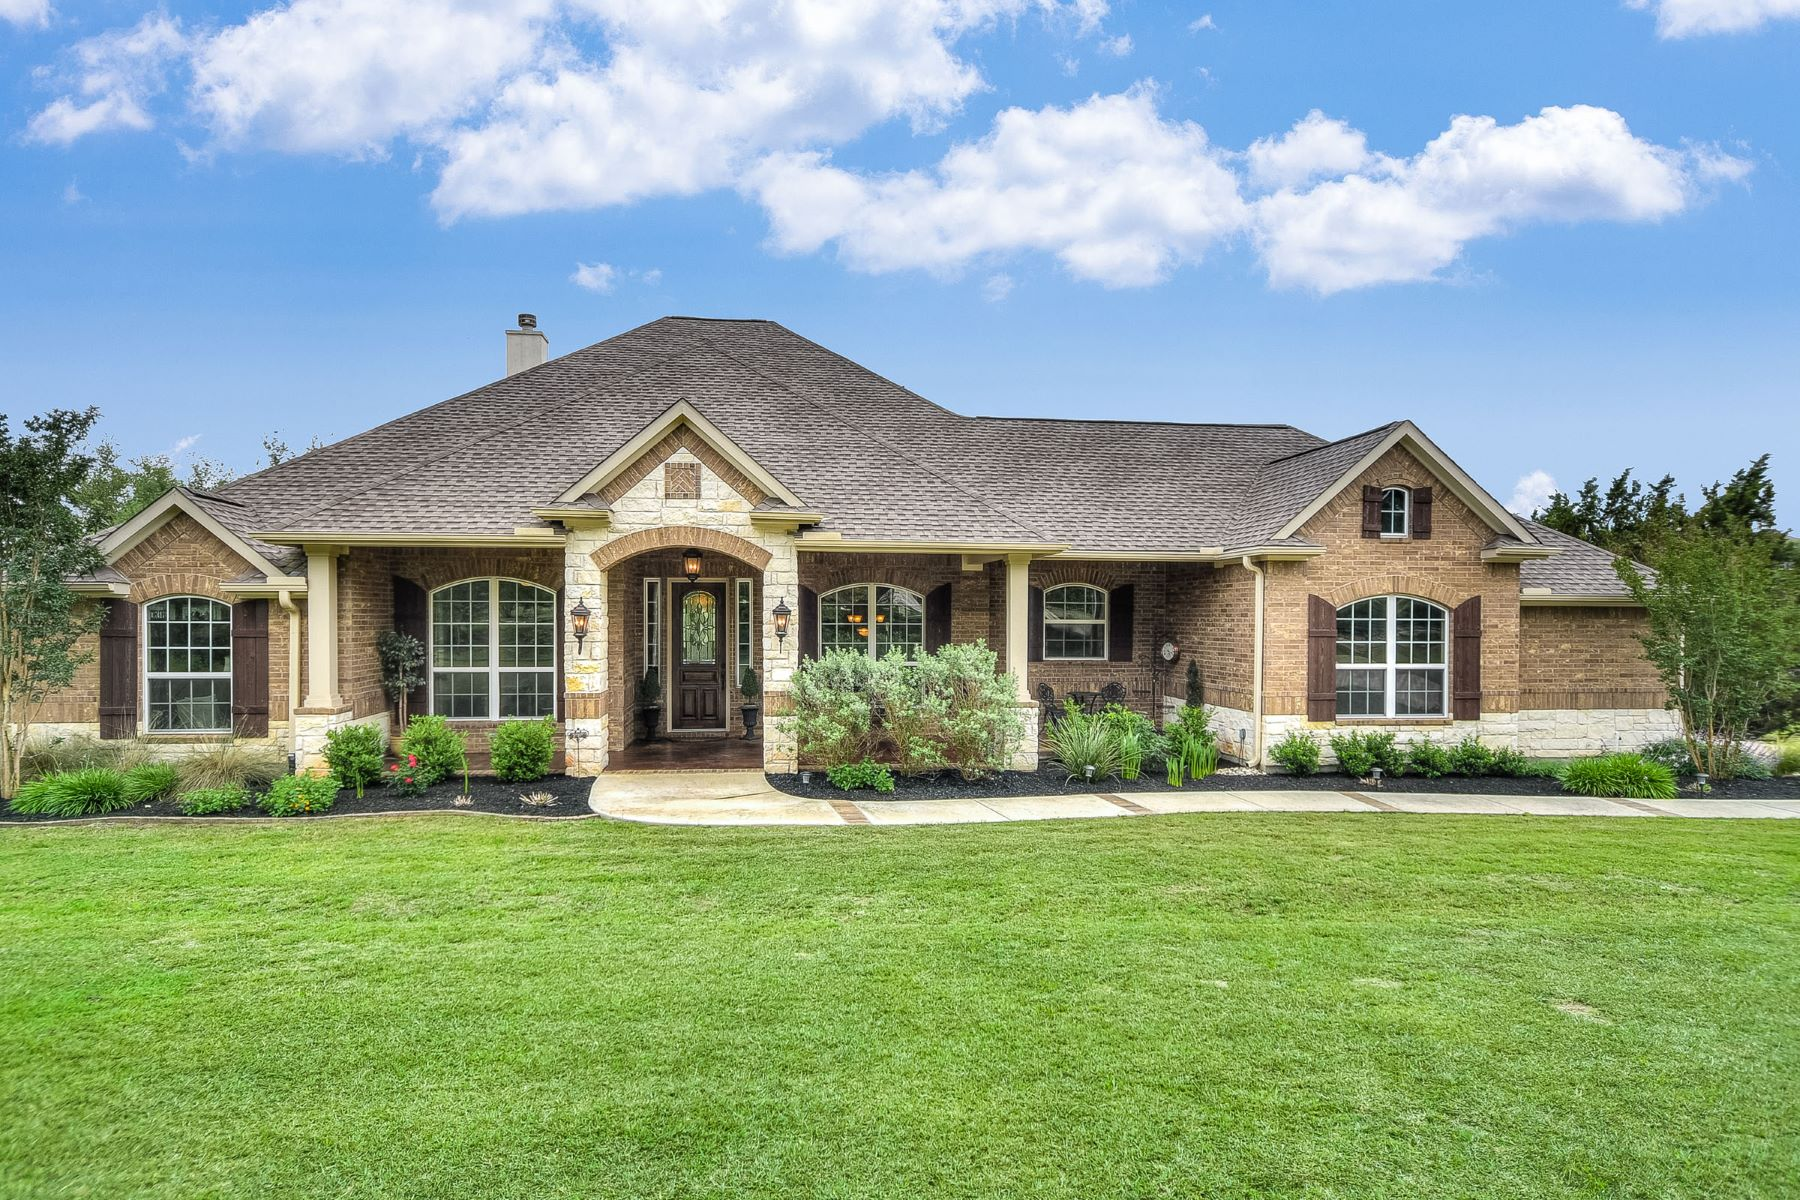 Single Family Home for Sale at Immaculate Inside and Out 337 Yorks Xing Driftwood, Texas 78619 United States